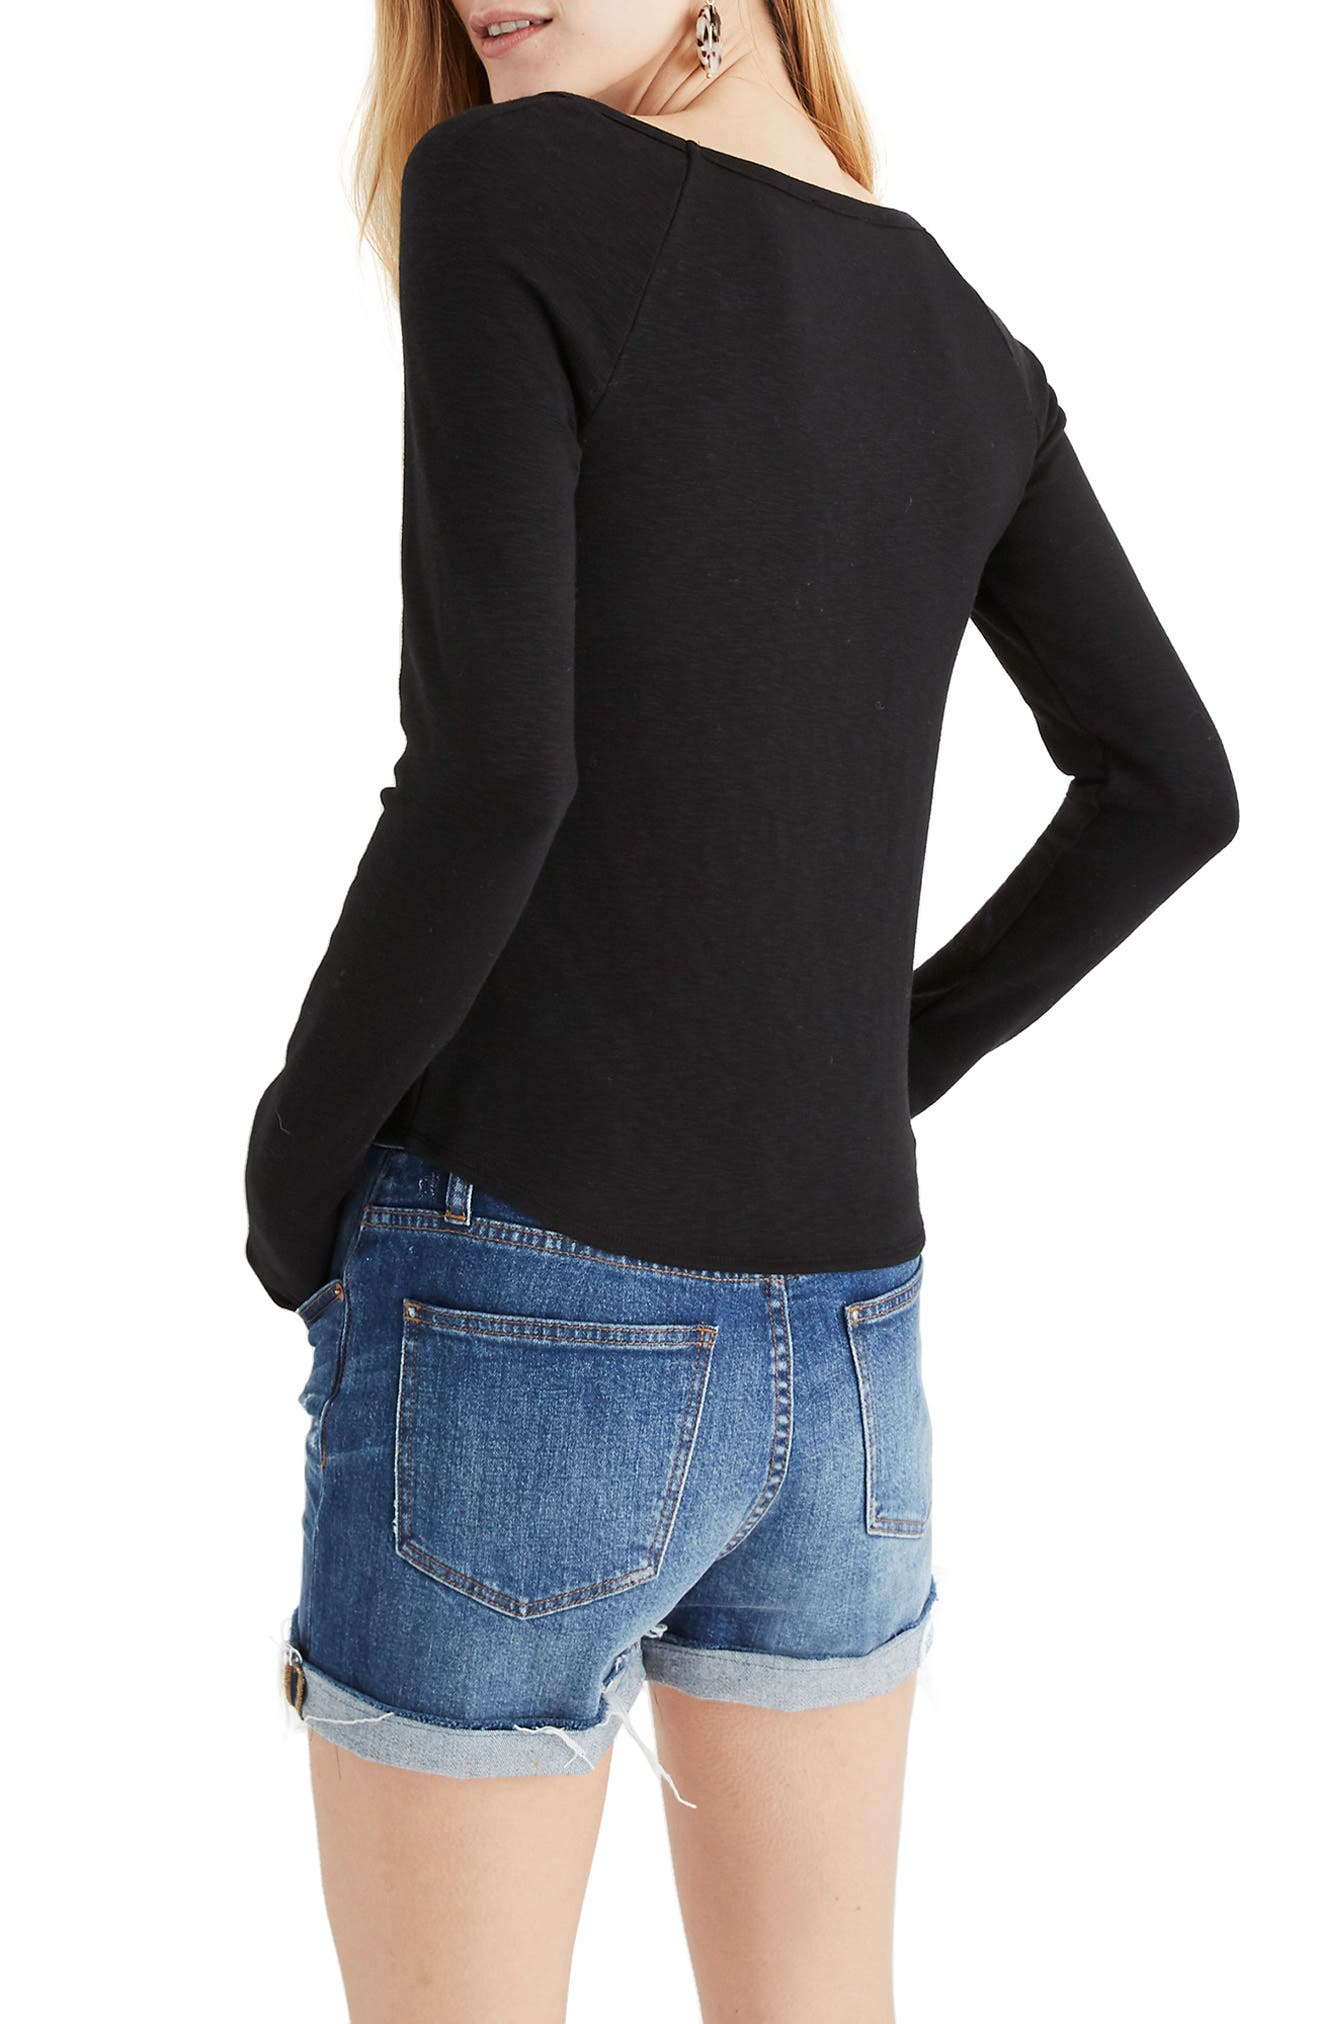 MADEWELL, Square Neck Long Sleeve Tee, Alternate thumbnail 3, color, TRUE BLACK